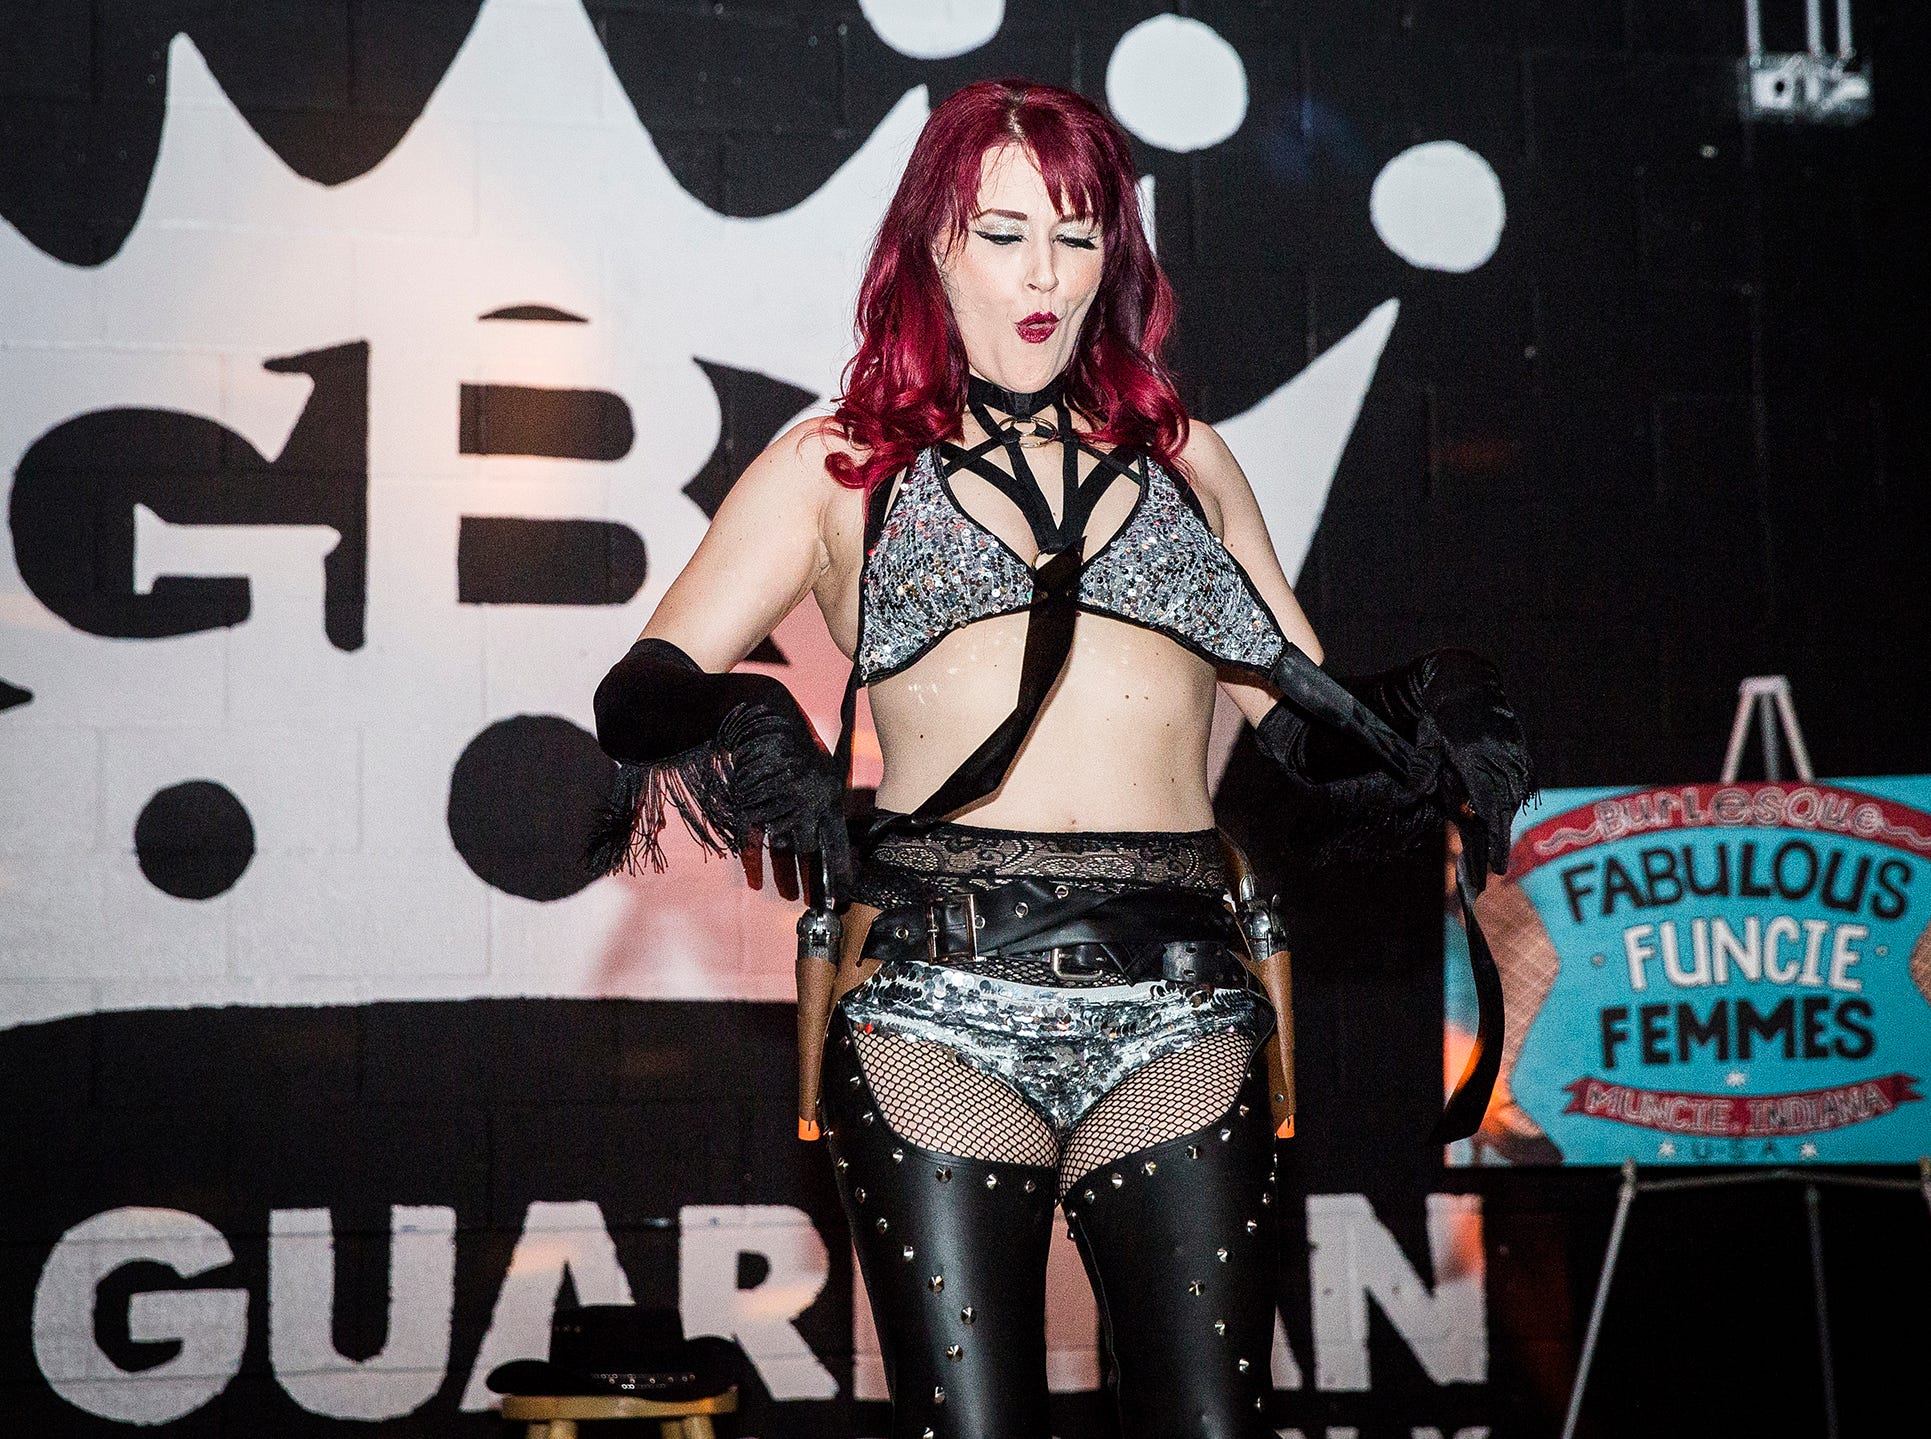 Jamie Prang performs a routine at The Guardian. Prang, who was diagnosed with MS, organizes the annual Fabulous Funcie Femmes Orange Masquerade Ball.